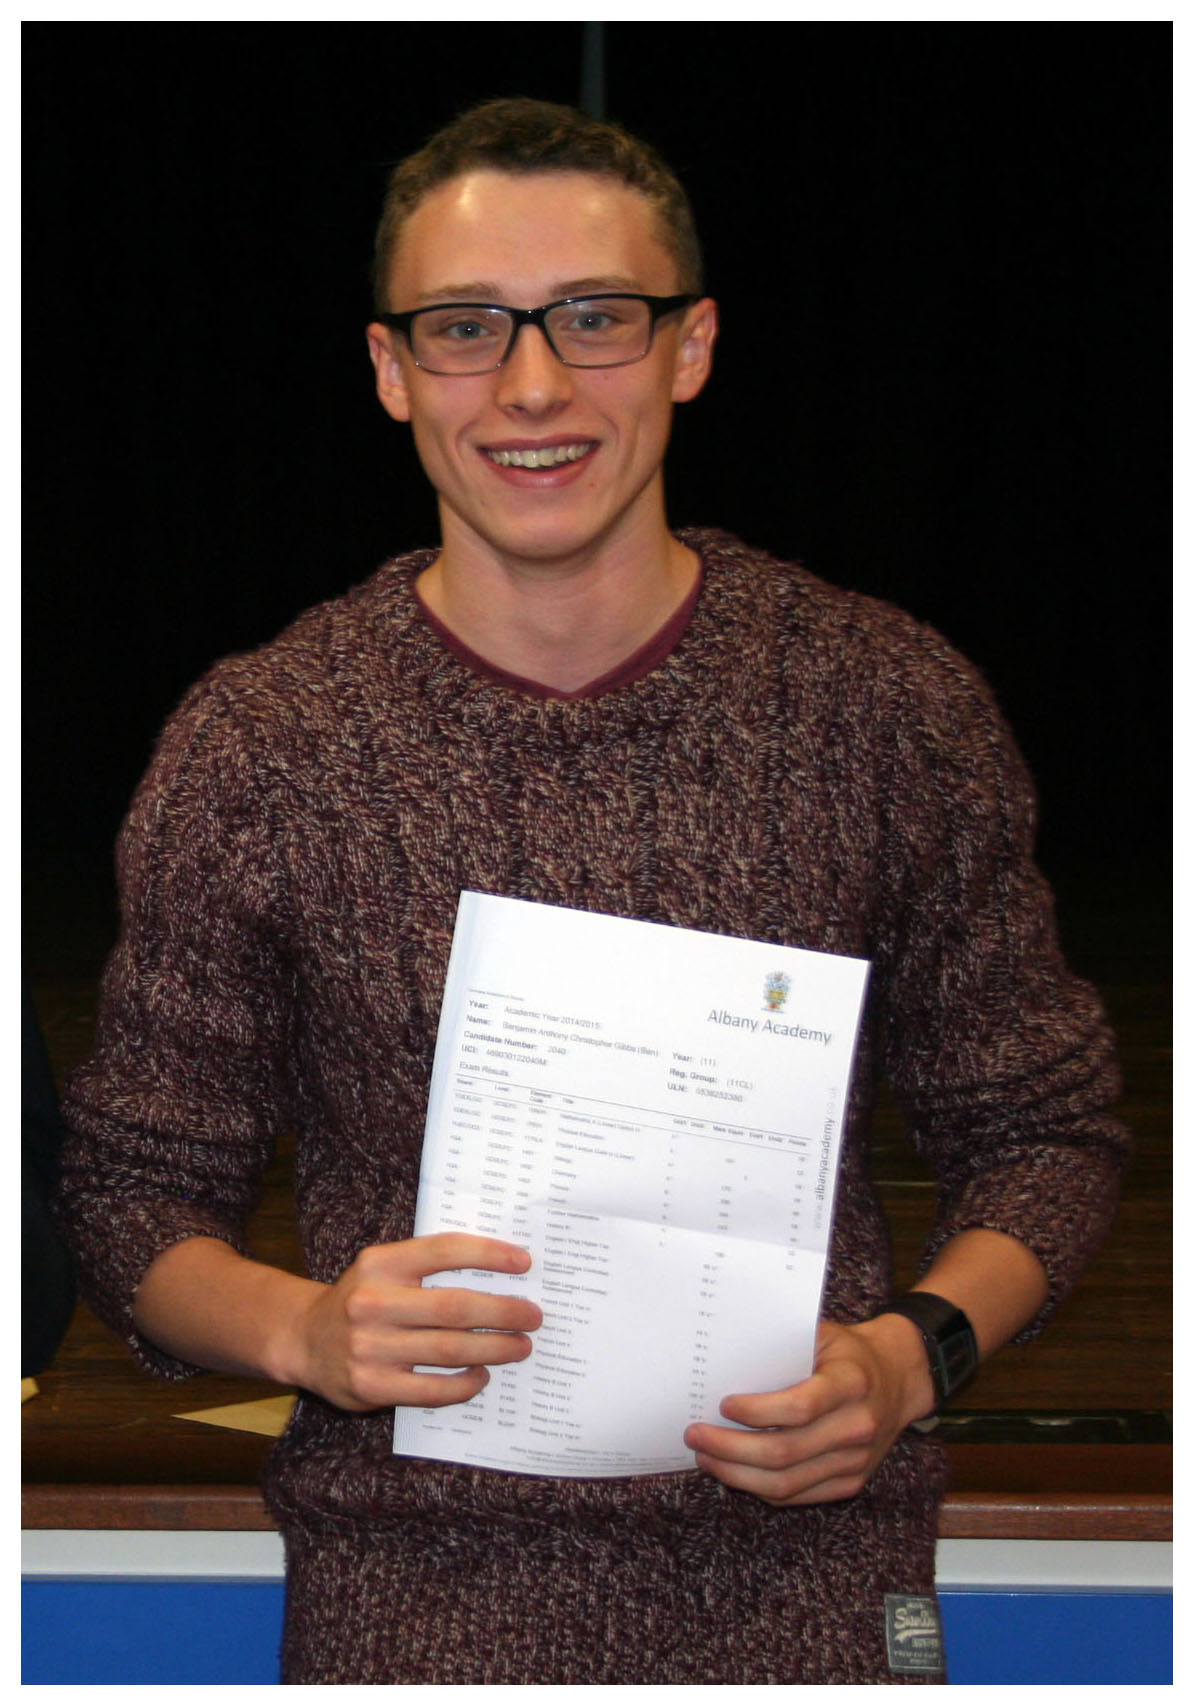 GCSE Results Day 2015 009ab.jpg